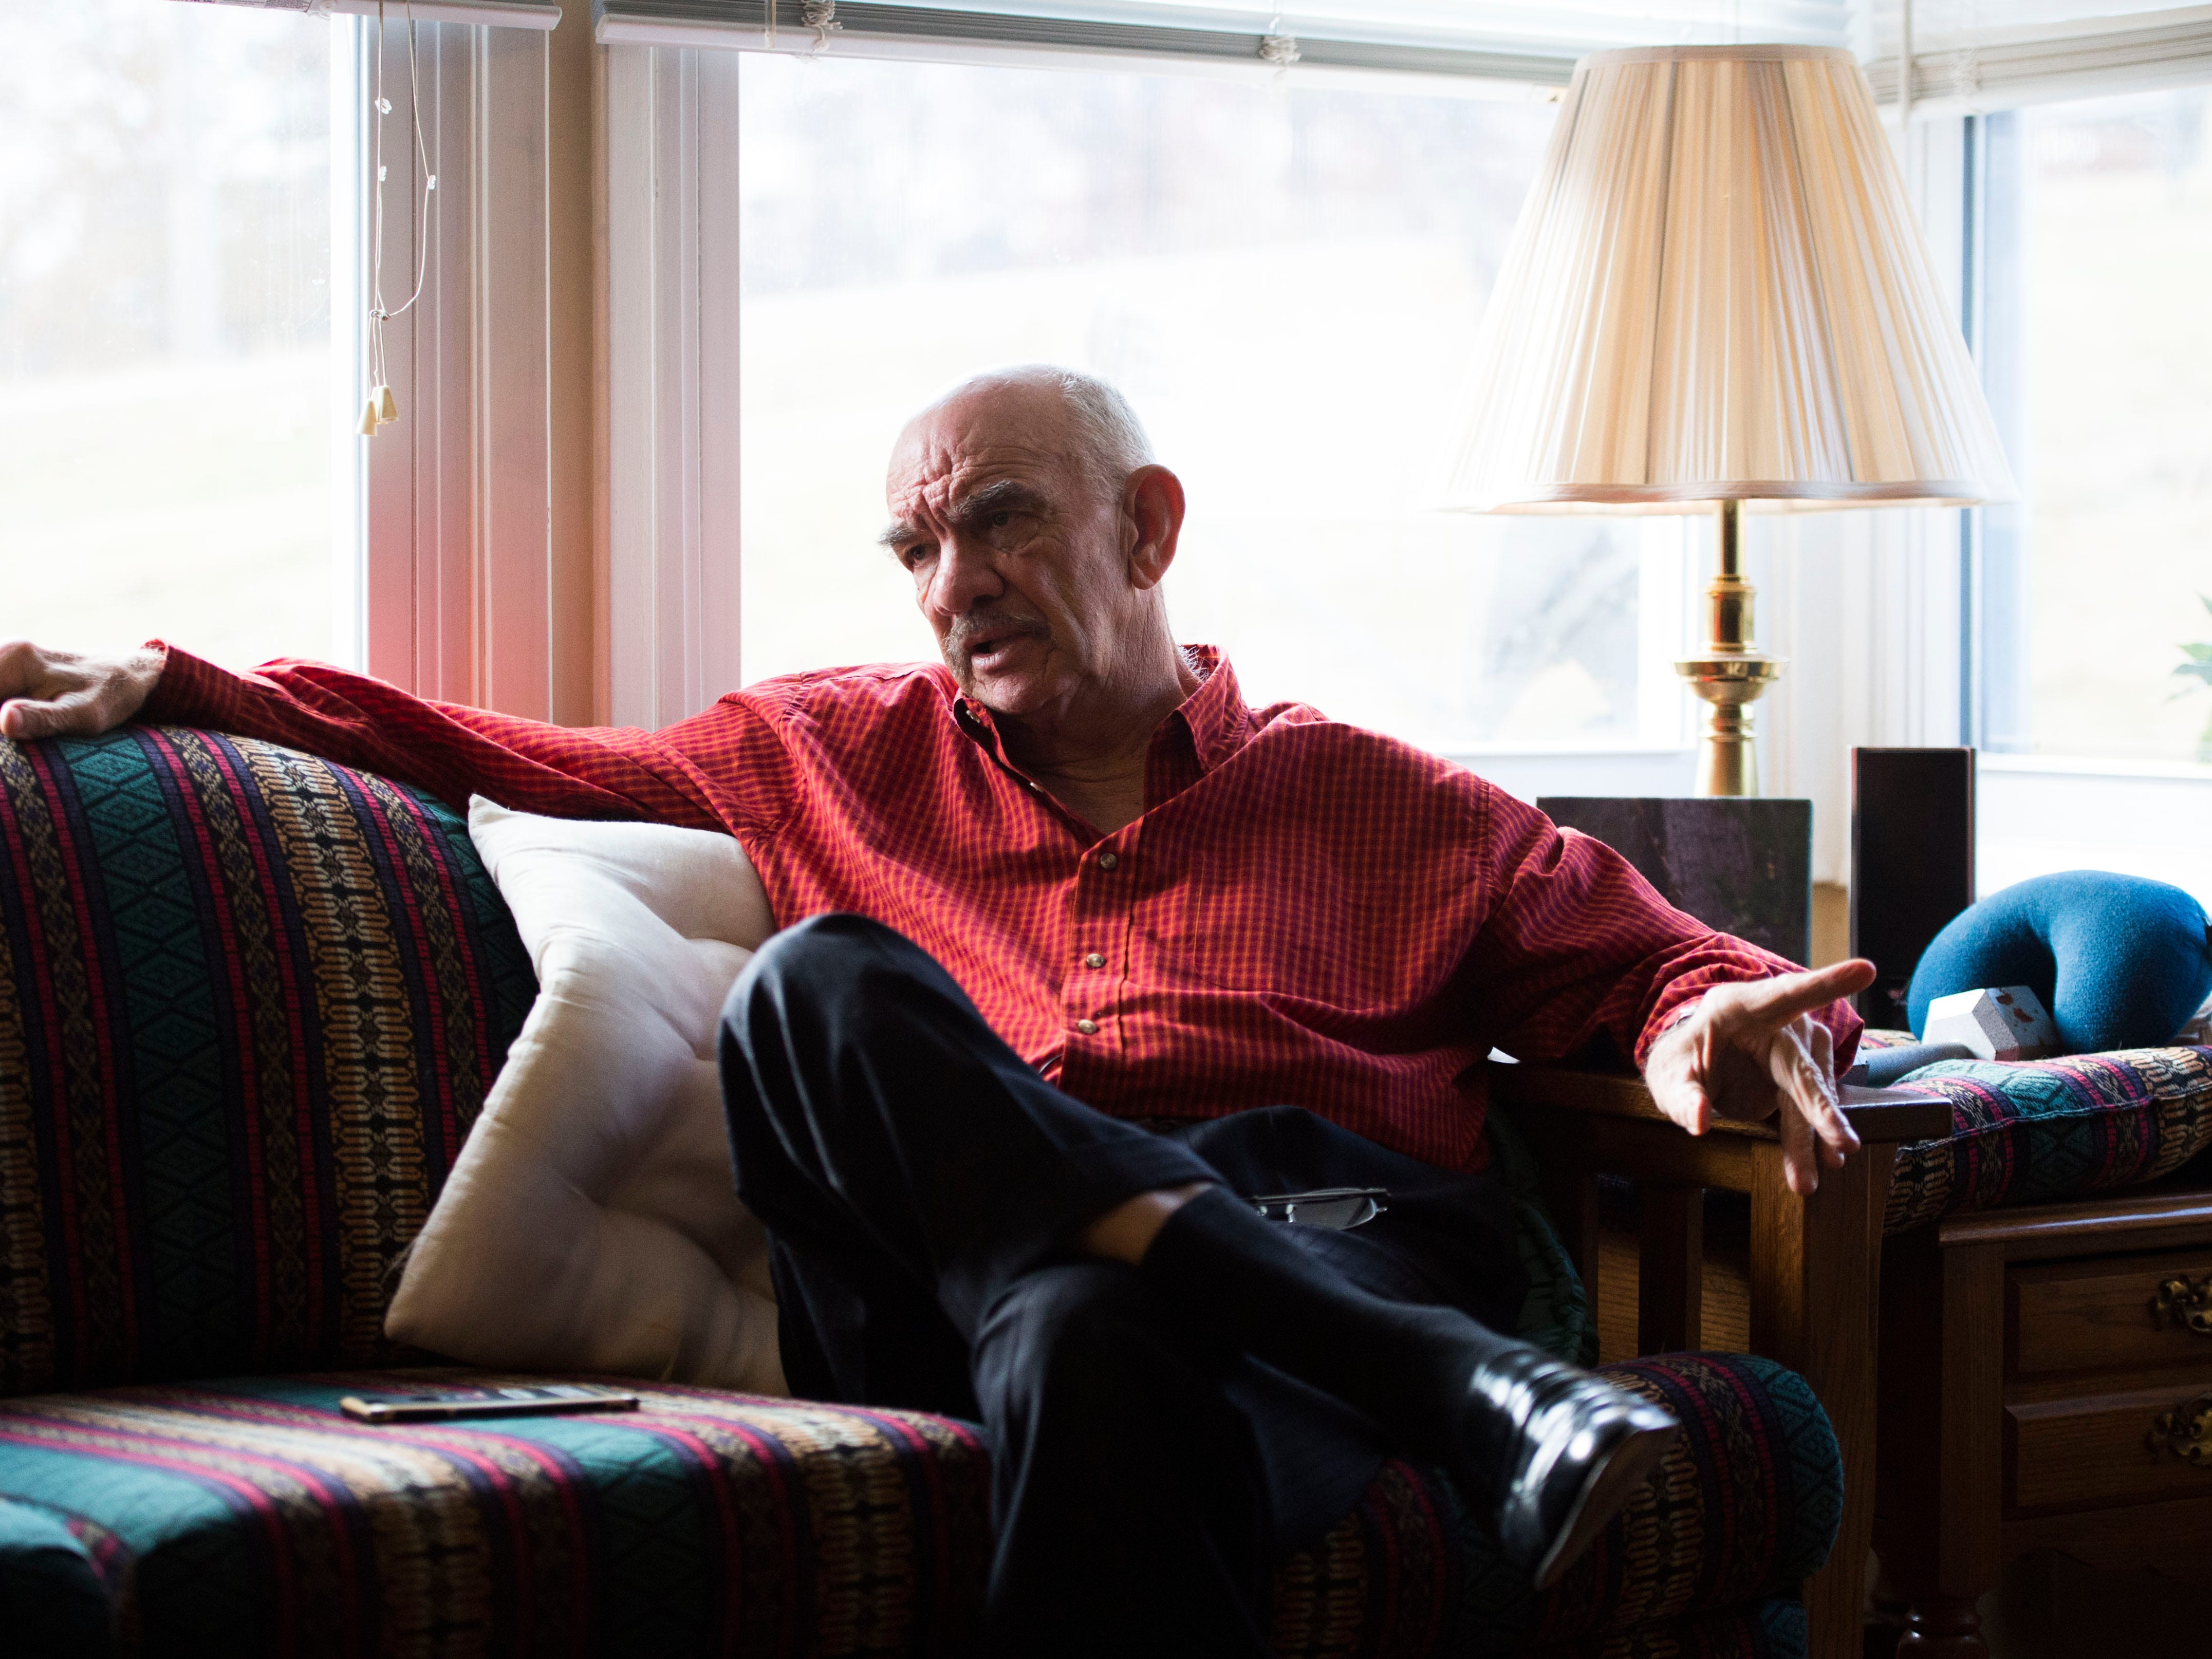 Retired Knoxville Police Department investigator Jim Winston, sits in his Knoxville home Tuesday, Nov. 27, 2018. Winston recounted the case of David Earl Miller's murder of Lee Standifer back in the 1980's.